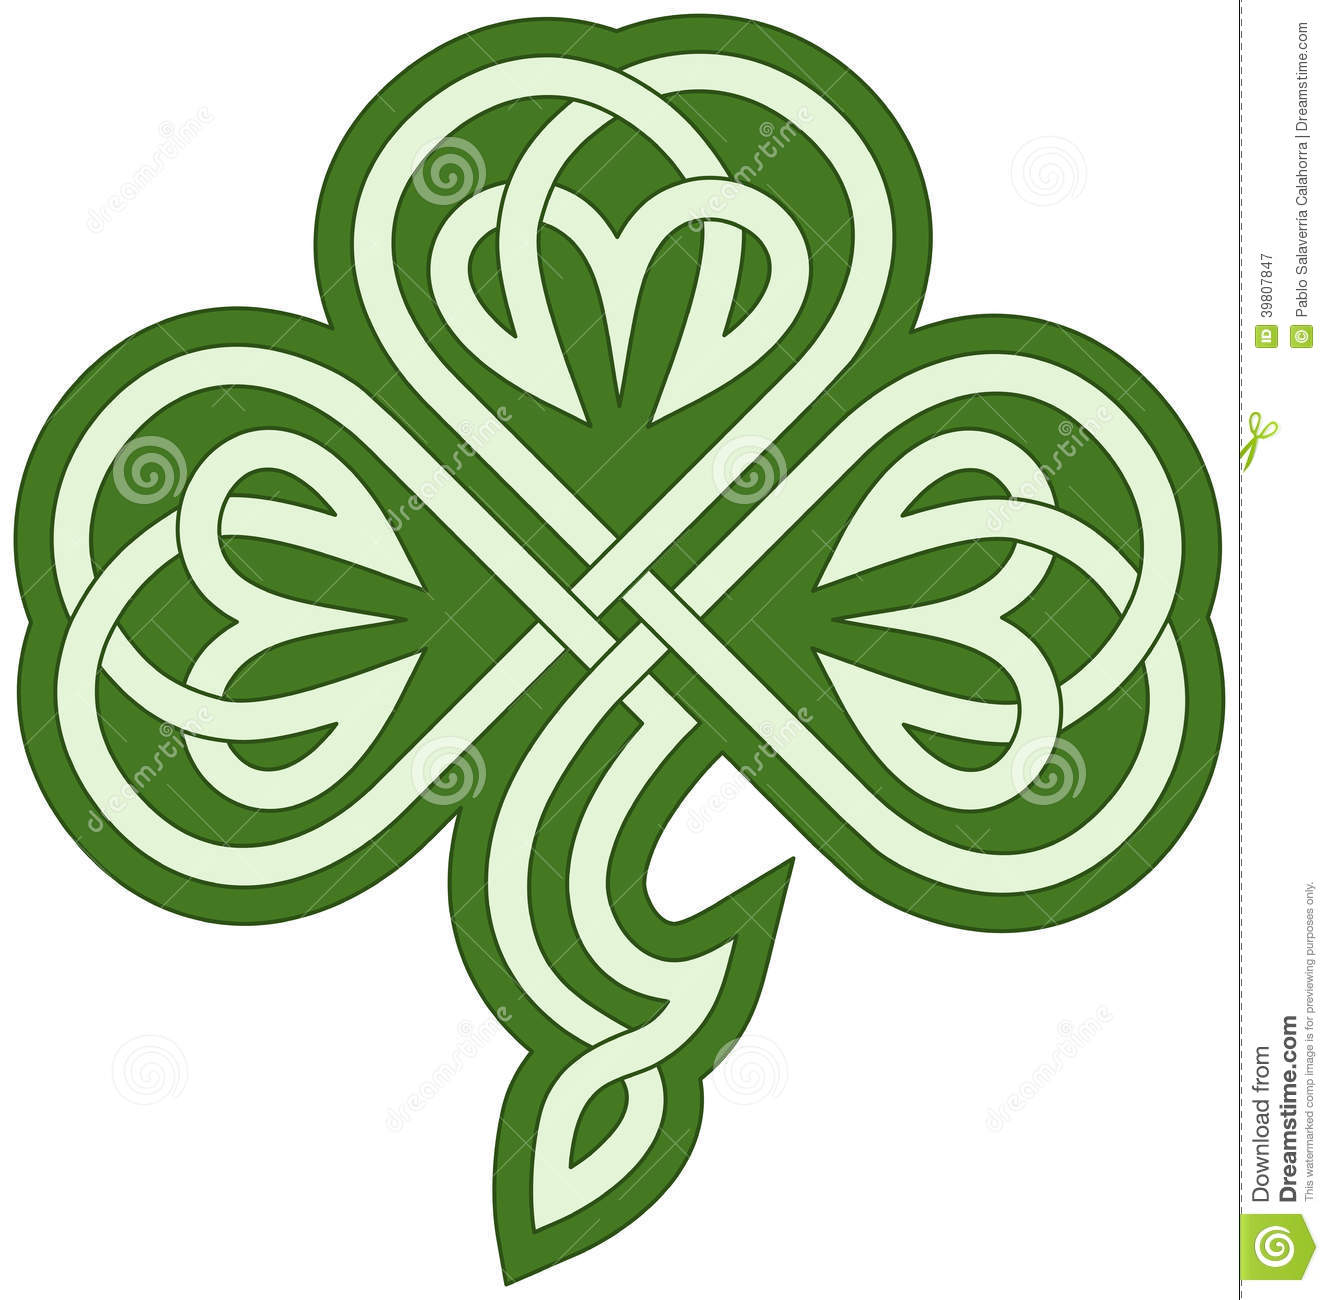 1329x1300 Celtic Knot Clipart Shamrock Free Collection Download And Share